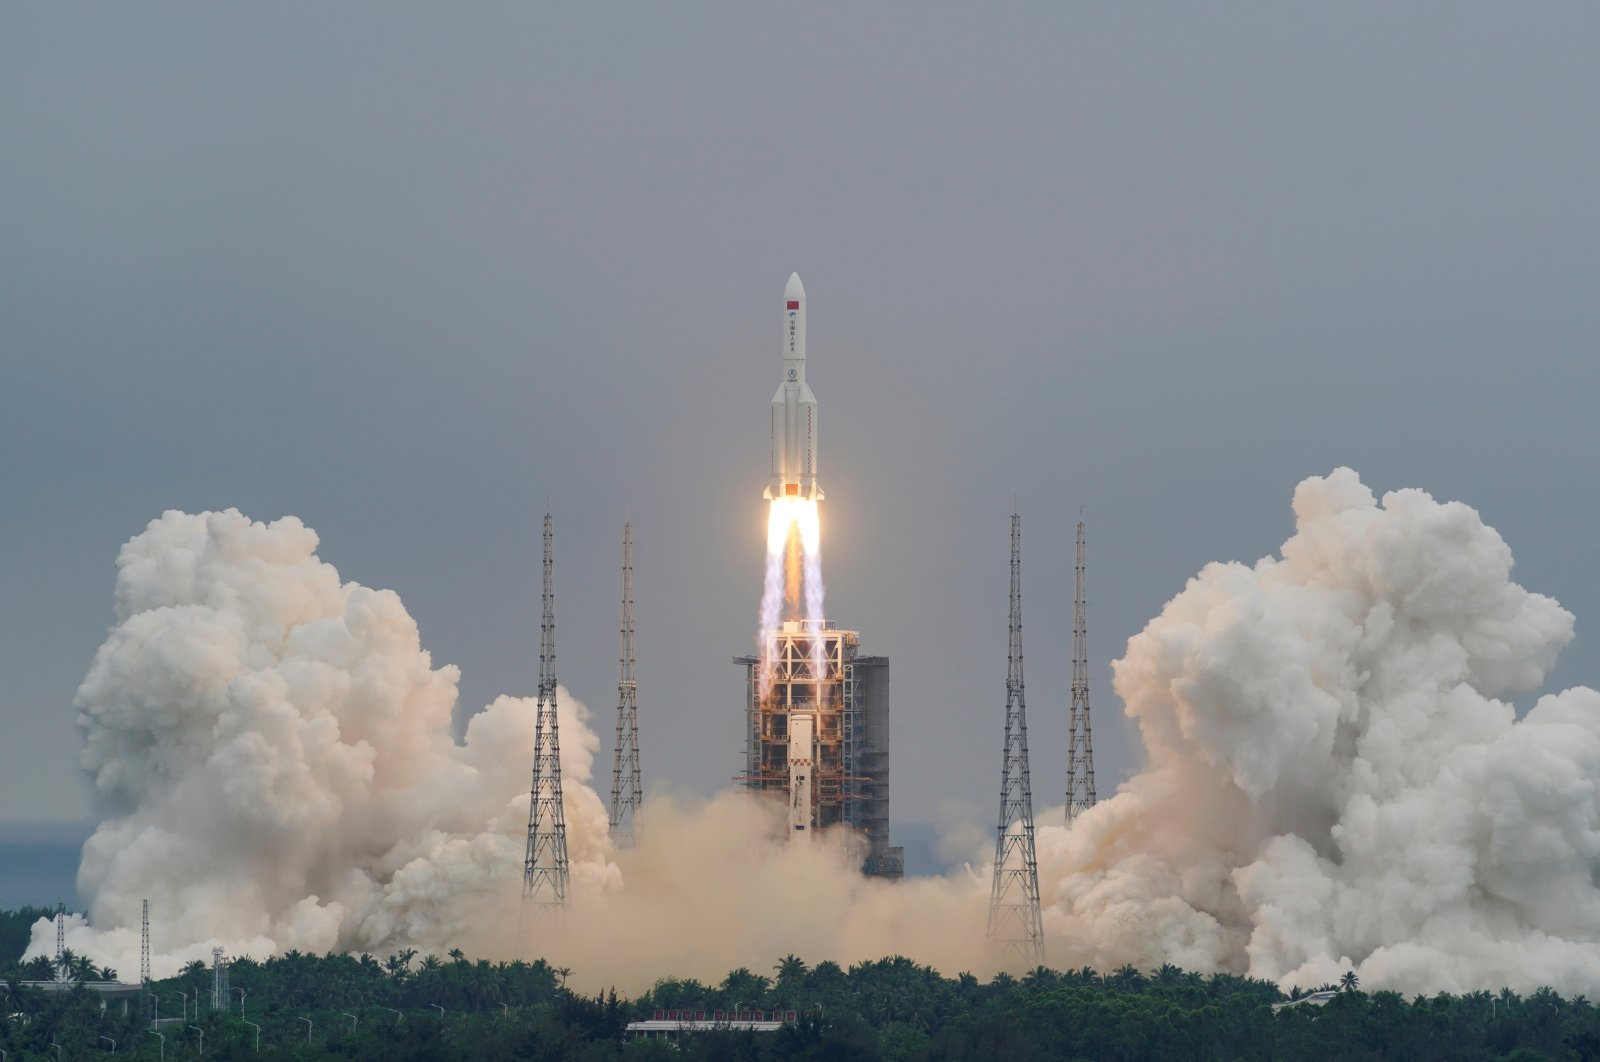 The Long March-5B Y2 rocket takes off, in Hainan, China, April 29, 2021. (REUTERS PHOTO)